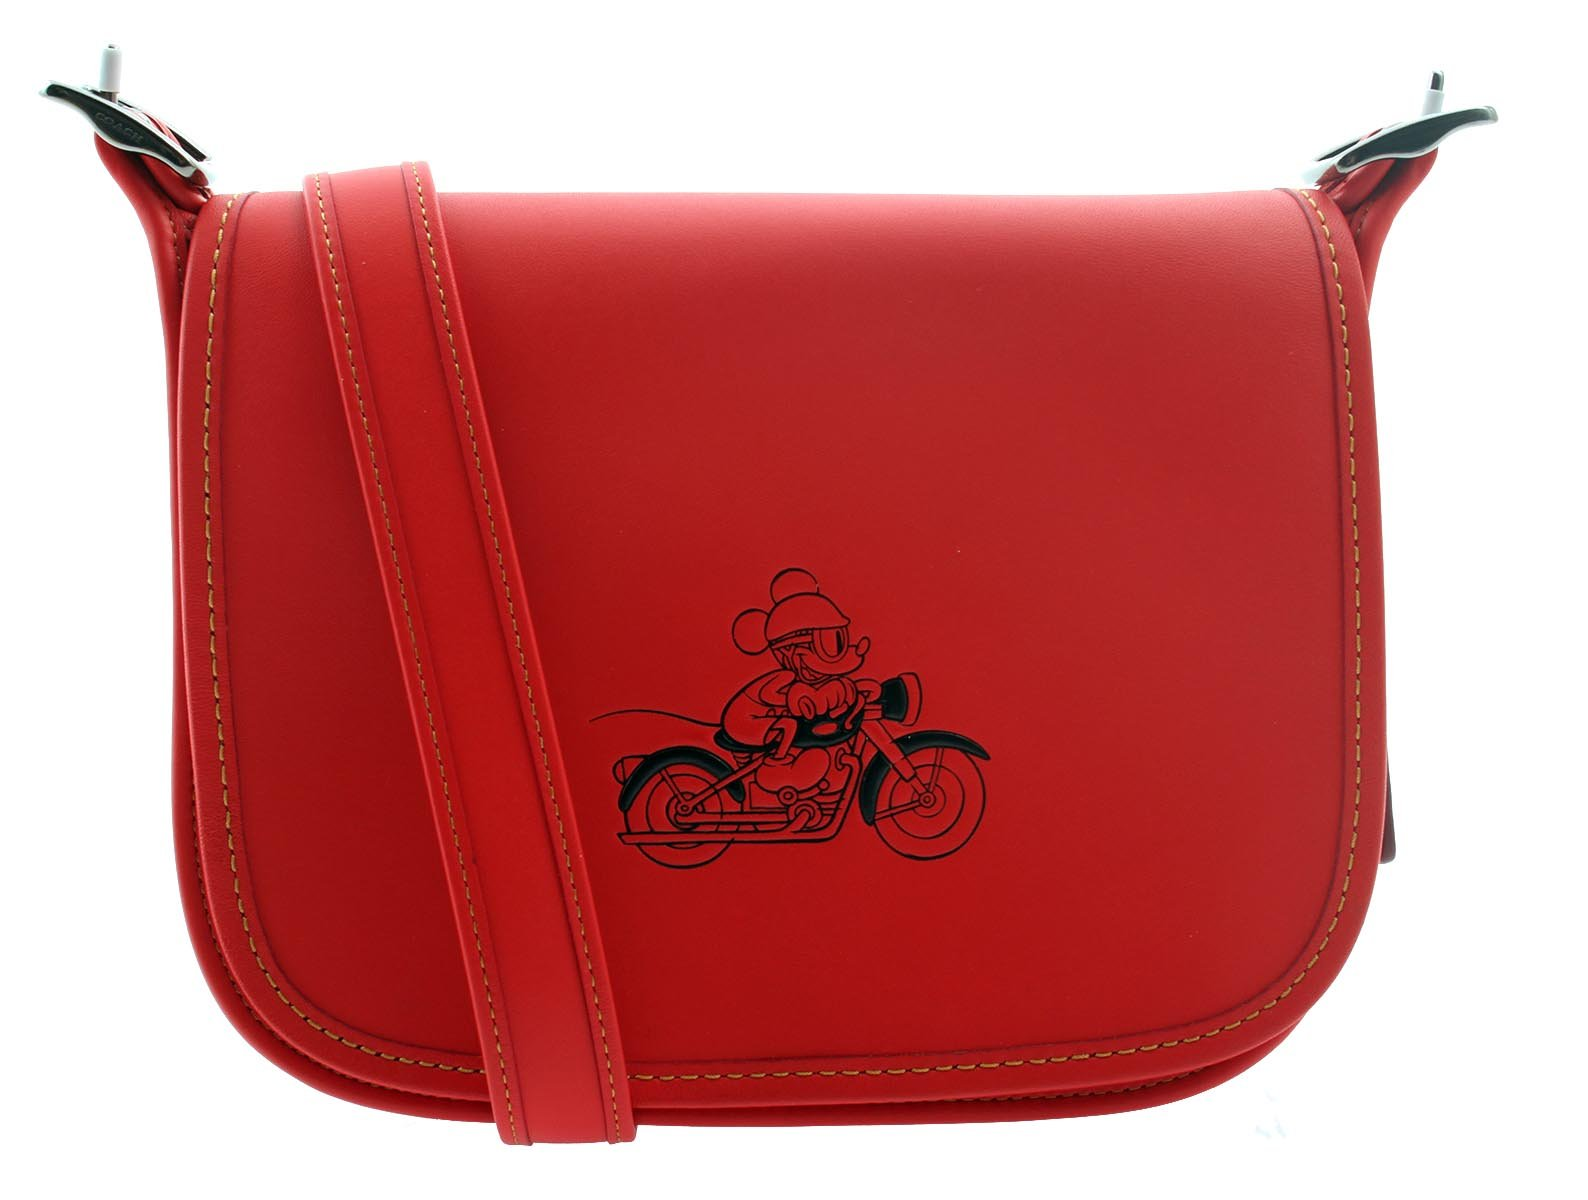 COACH MICKEY Patricia Saddle 23 in Glove Calf Leather with Mickey (Bright Red)